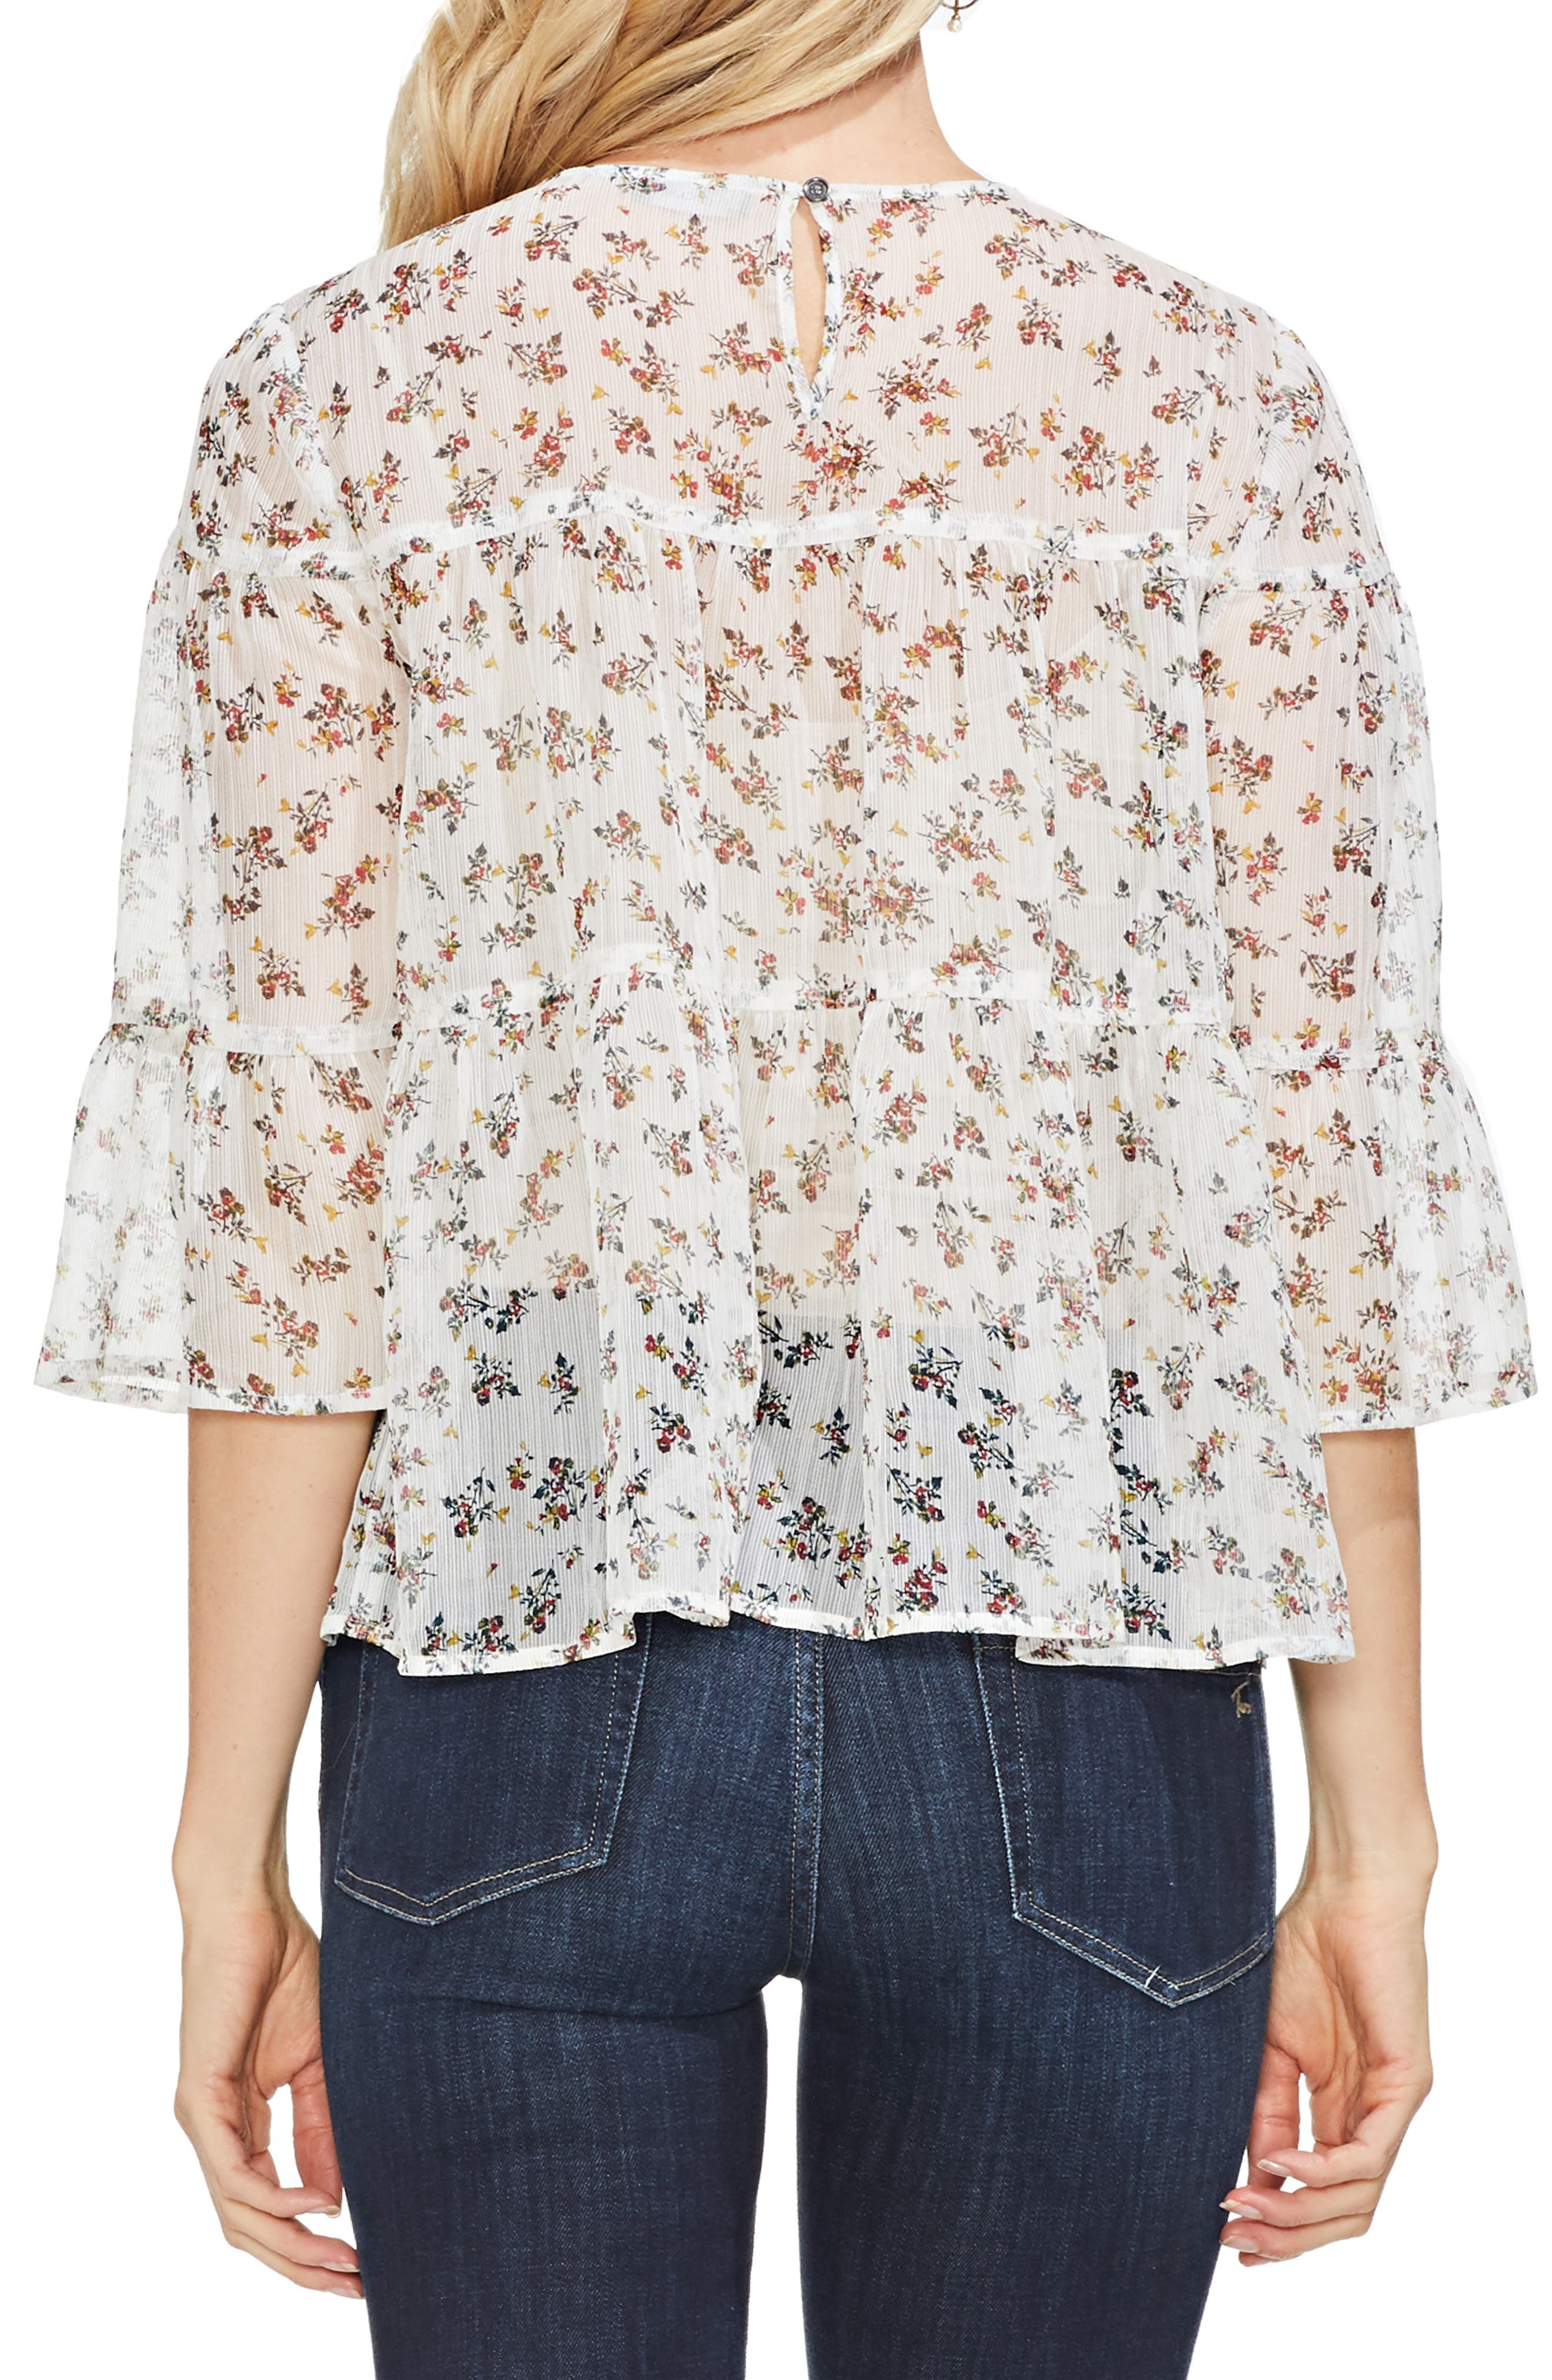 VINCE CAMUTO, Ditsy Manor Tiered Ruffle Blouse, Alternate thumbnail 2, color, 108